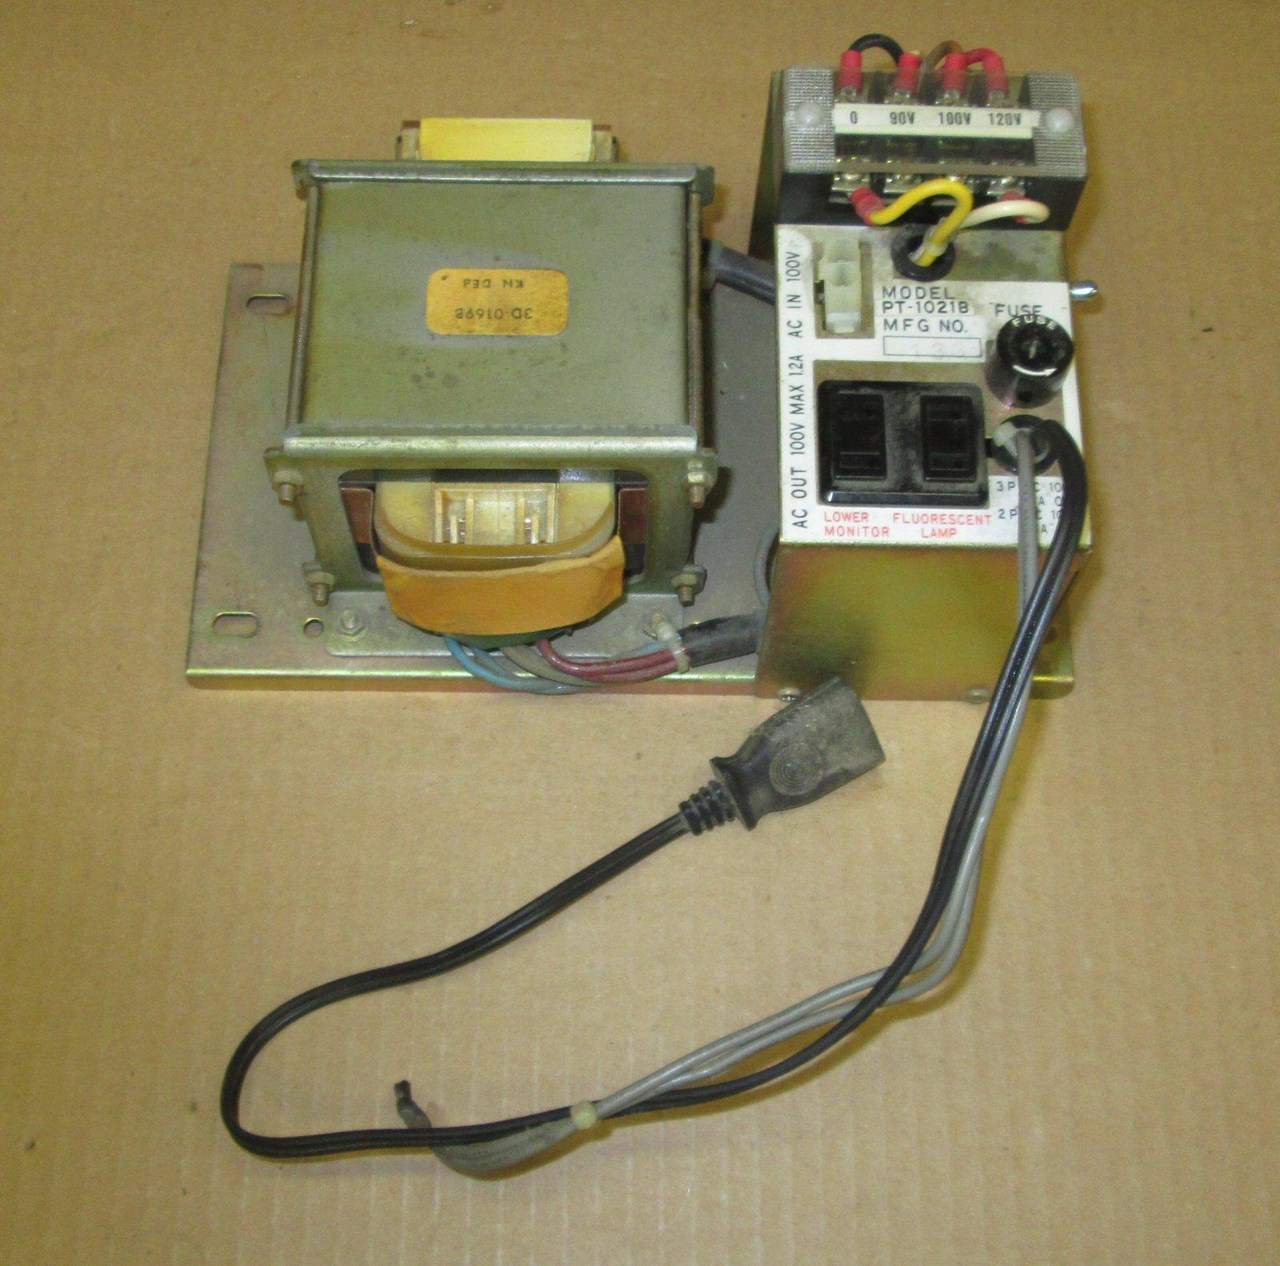 Nintendo Power Transformer Pt 1021b Tested Working For Sale Wiring Jamma Supply Picture Of